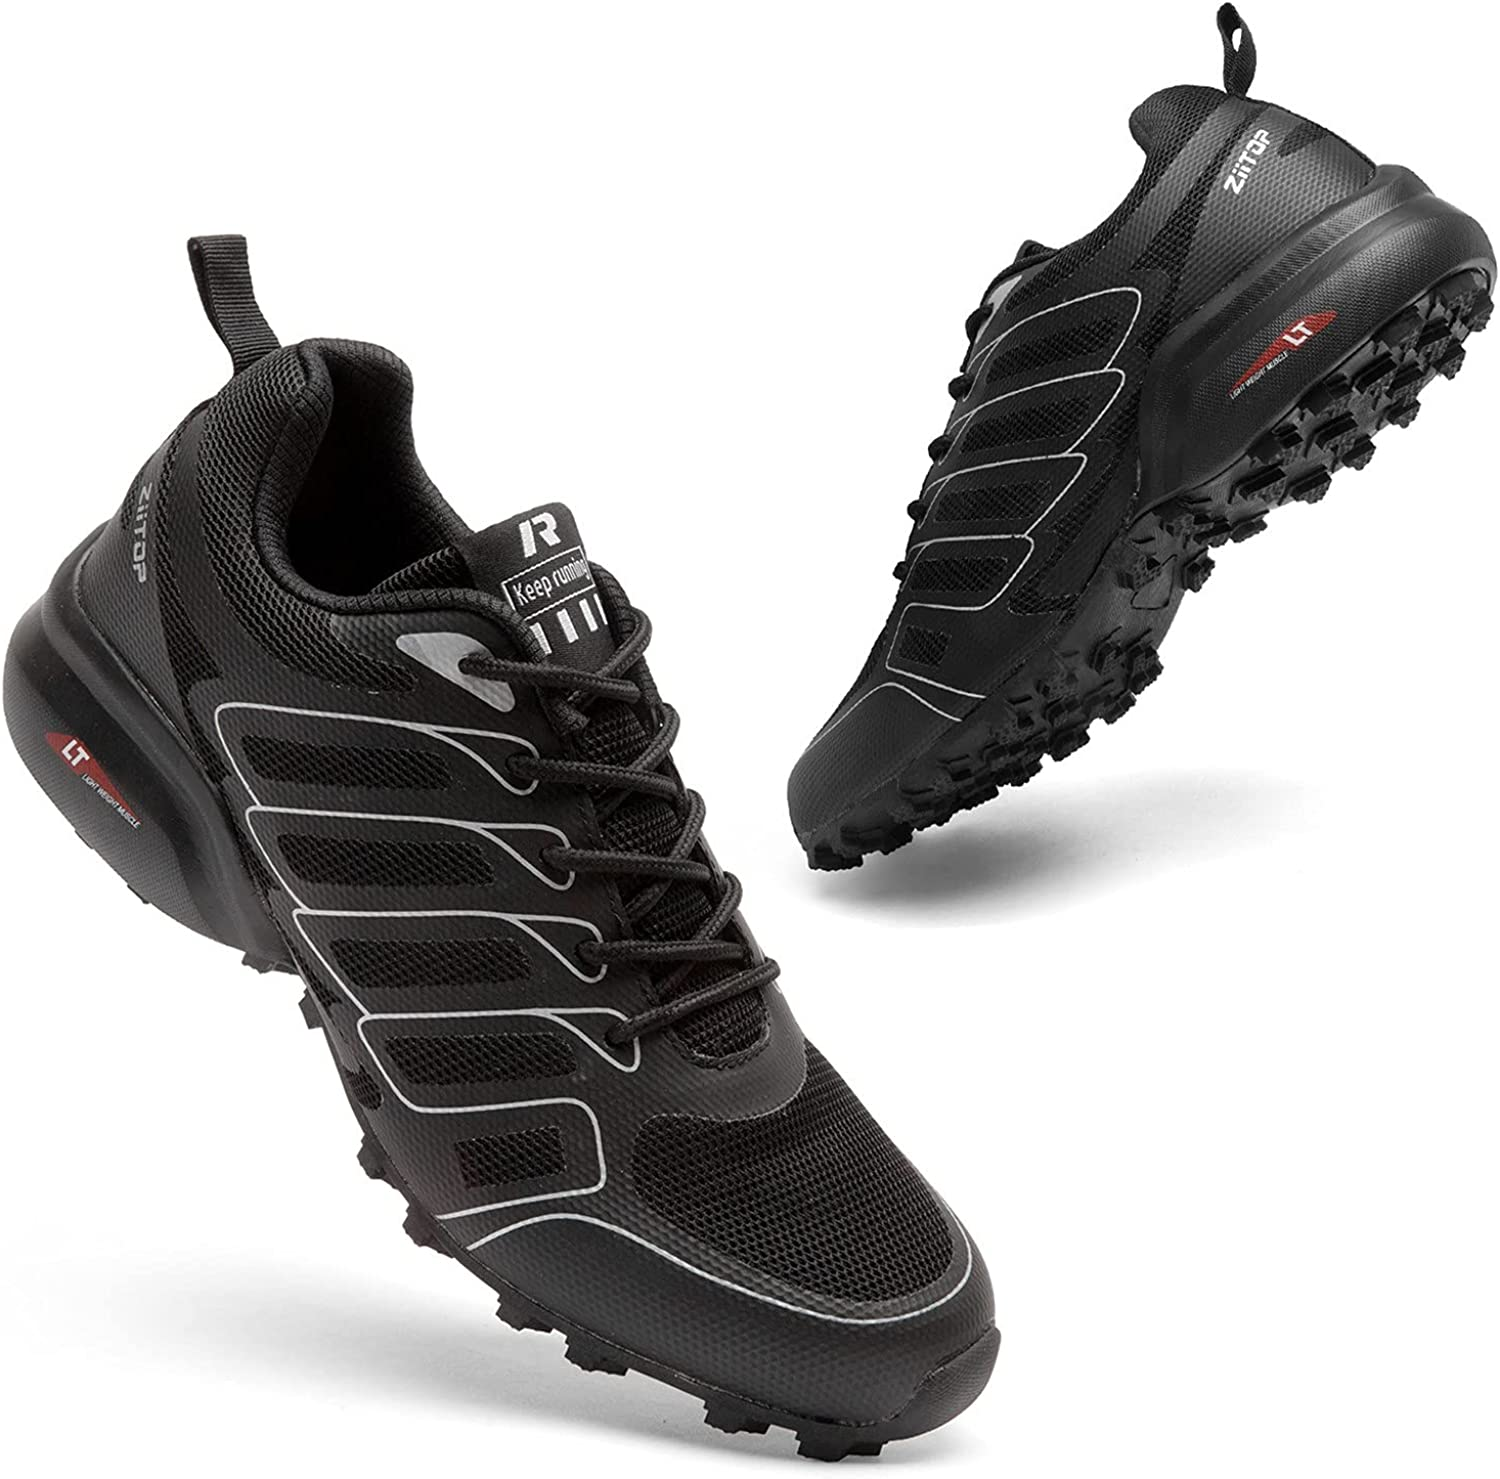 ziitop Mens Trail Running Shoes Wild Max 48% OFF Men Lig Al sold out. Sneakers Hiking for